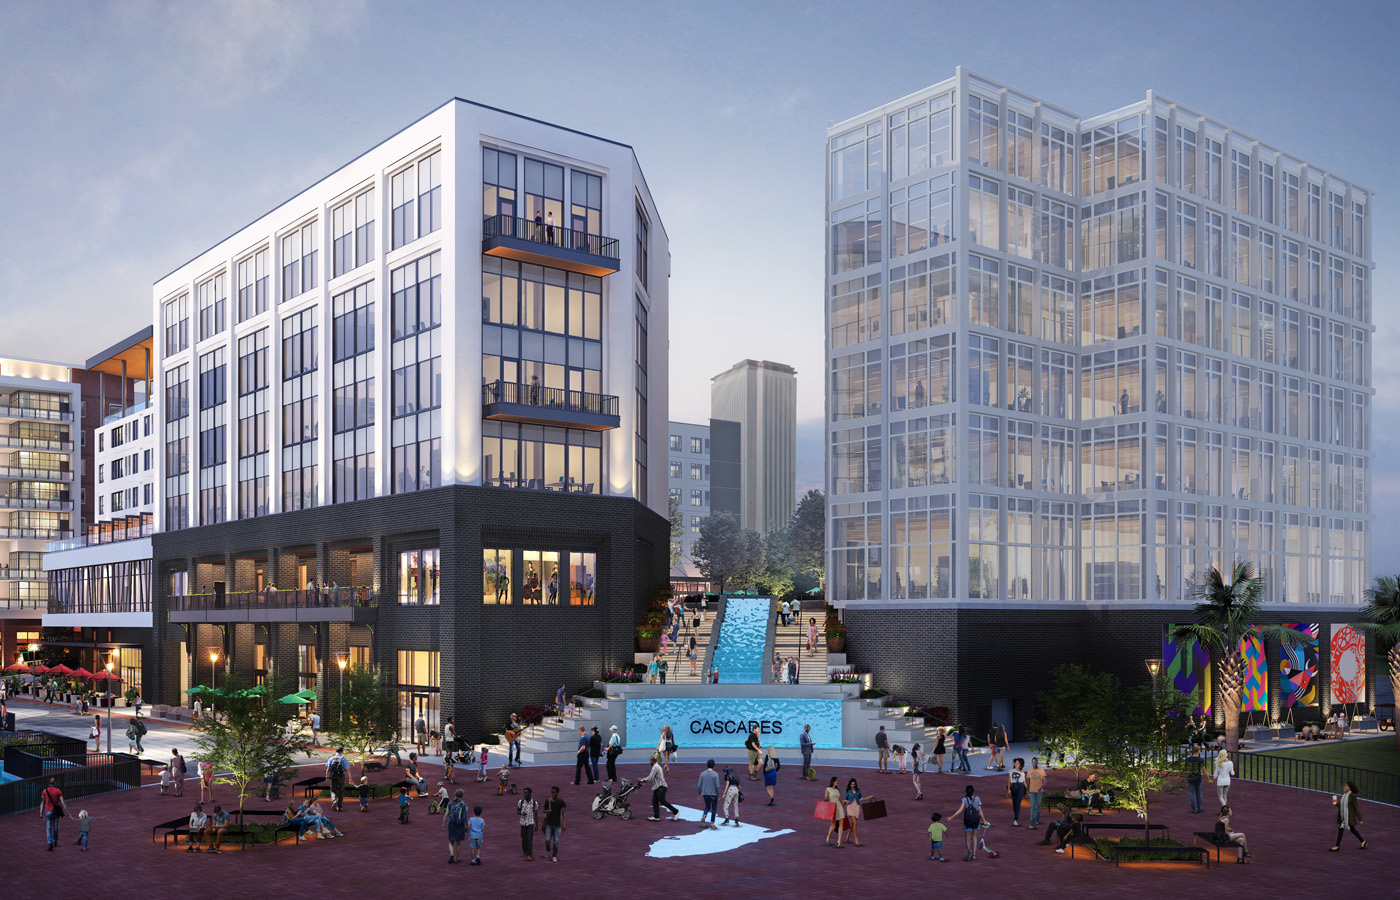 Rendering of the Cascades development